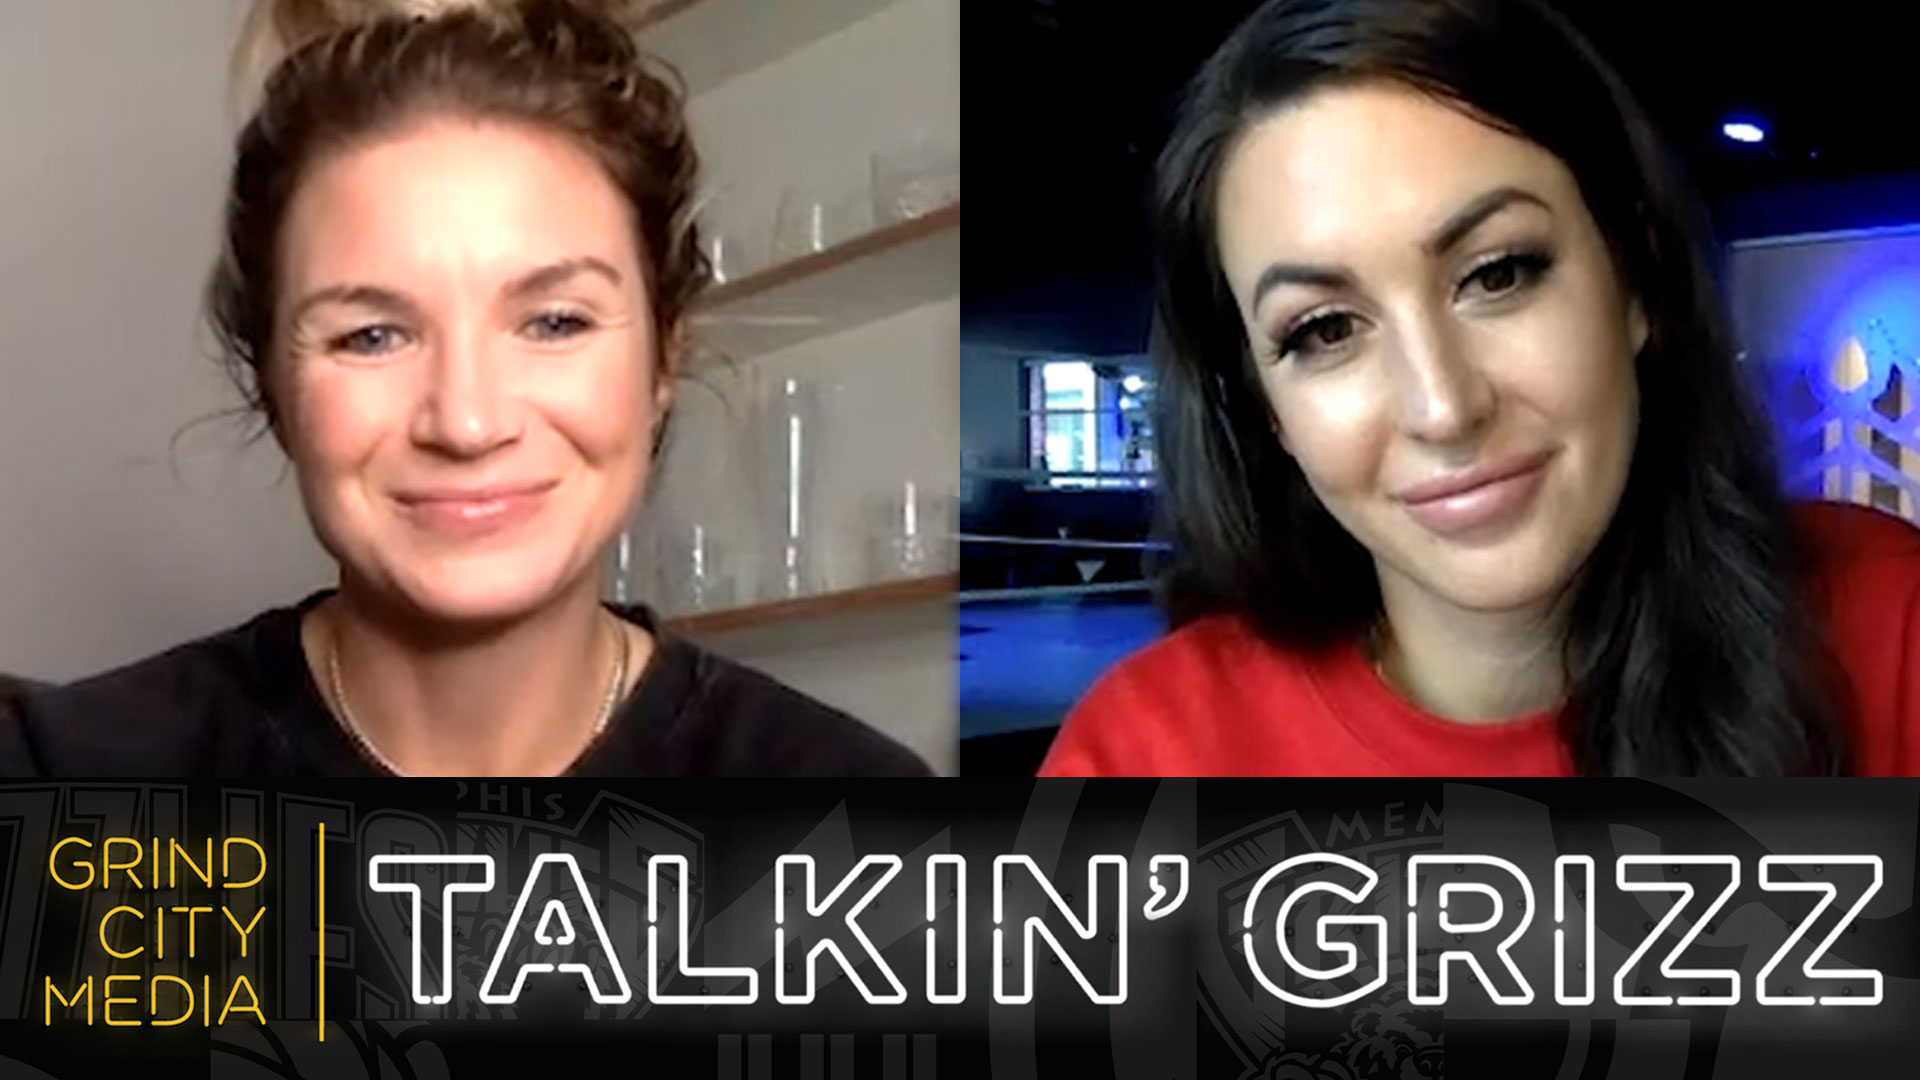 Talkin' Grizz with Lakers' Reporter Allie Clifton of Spectrum SportsNet